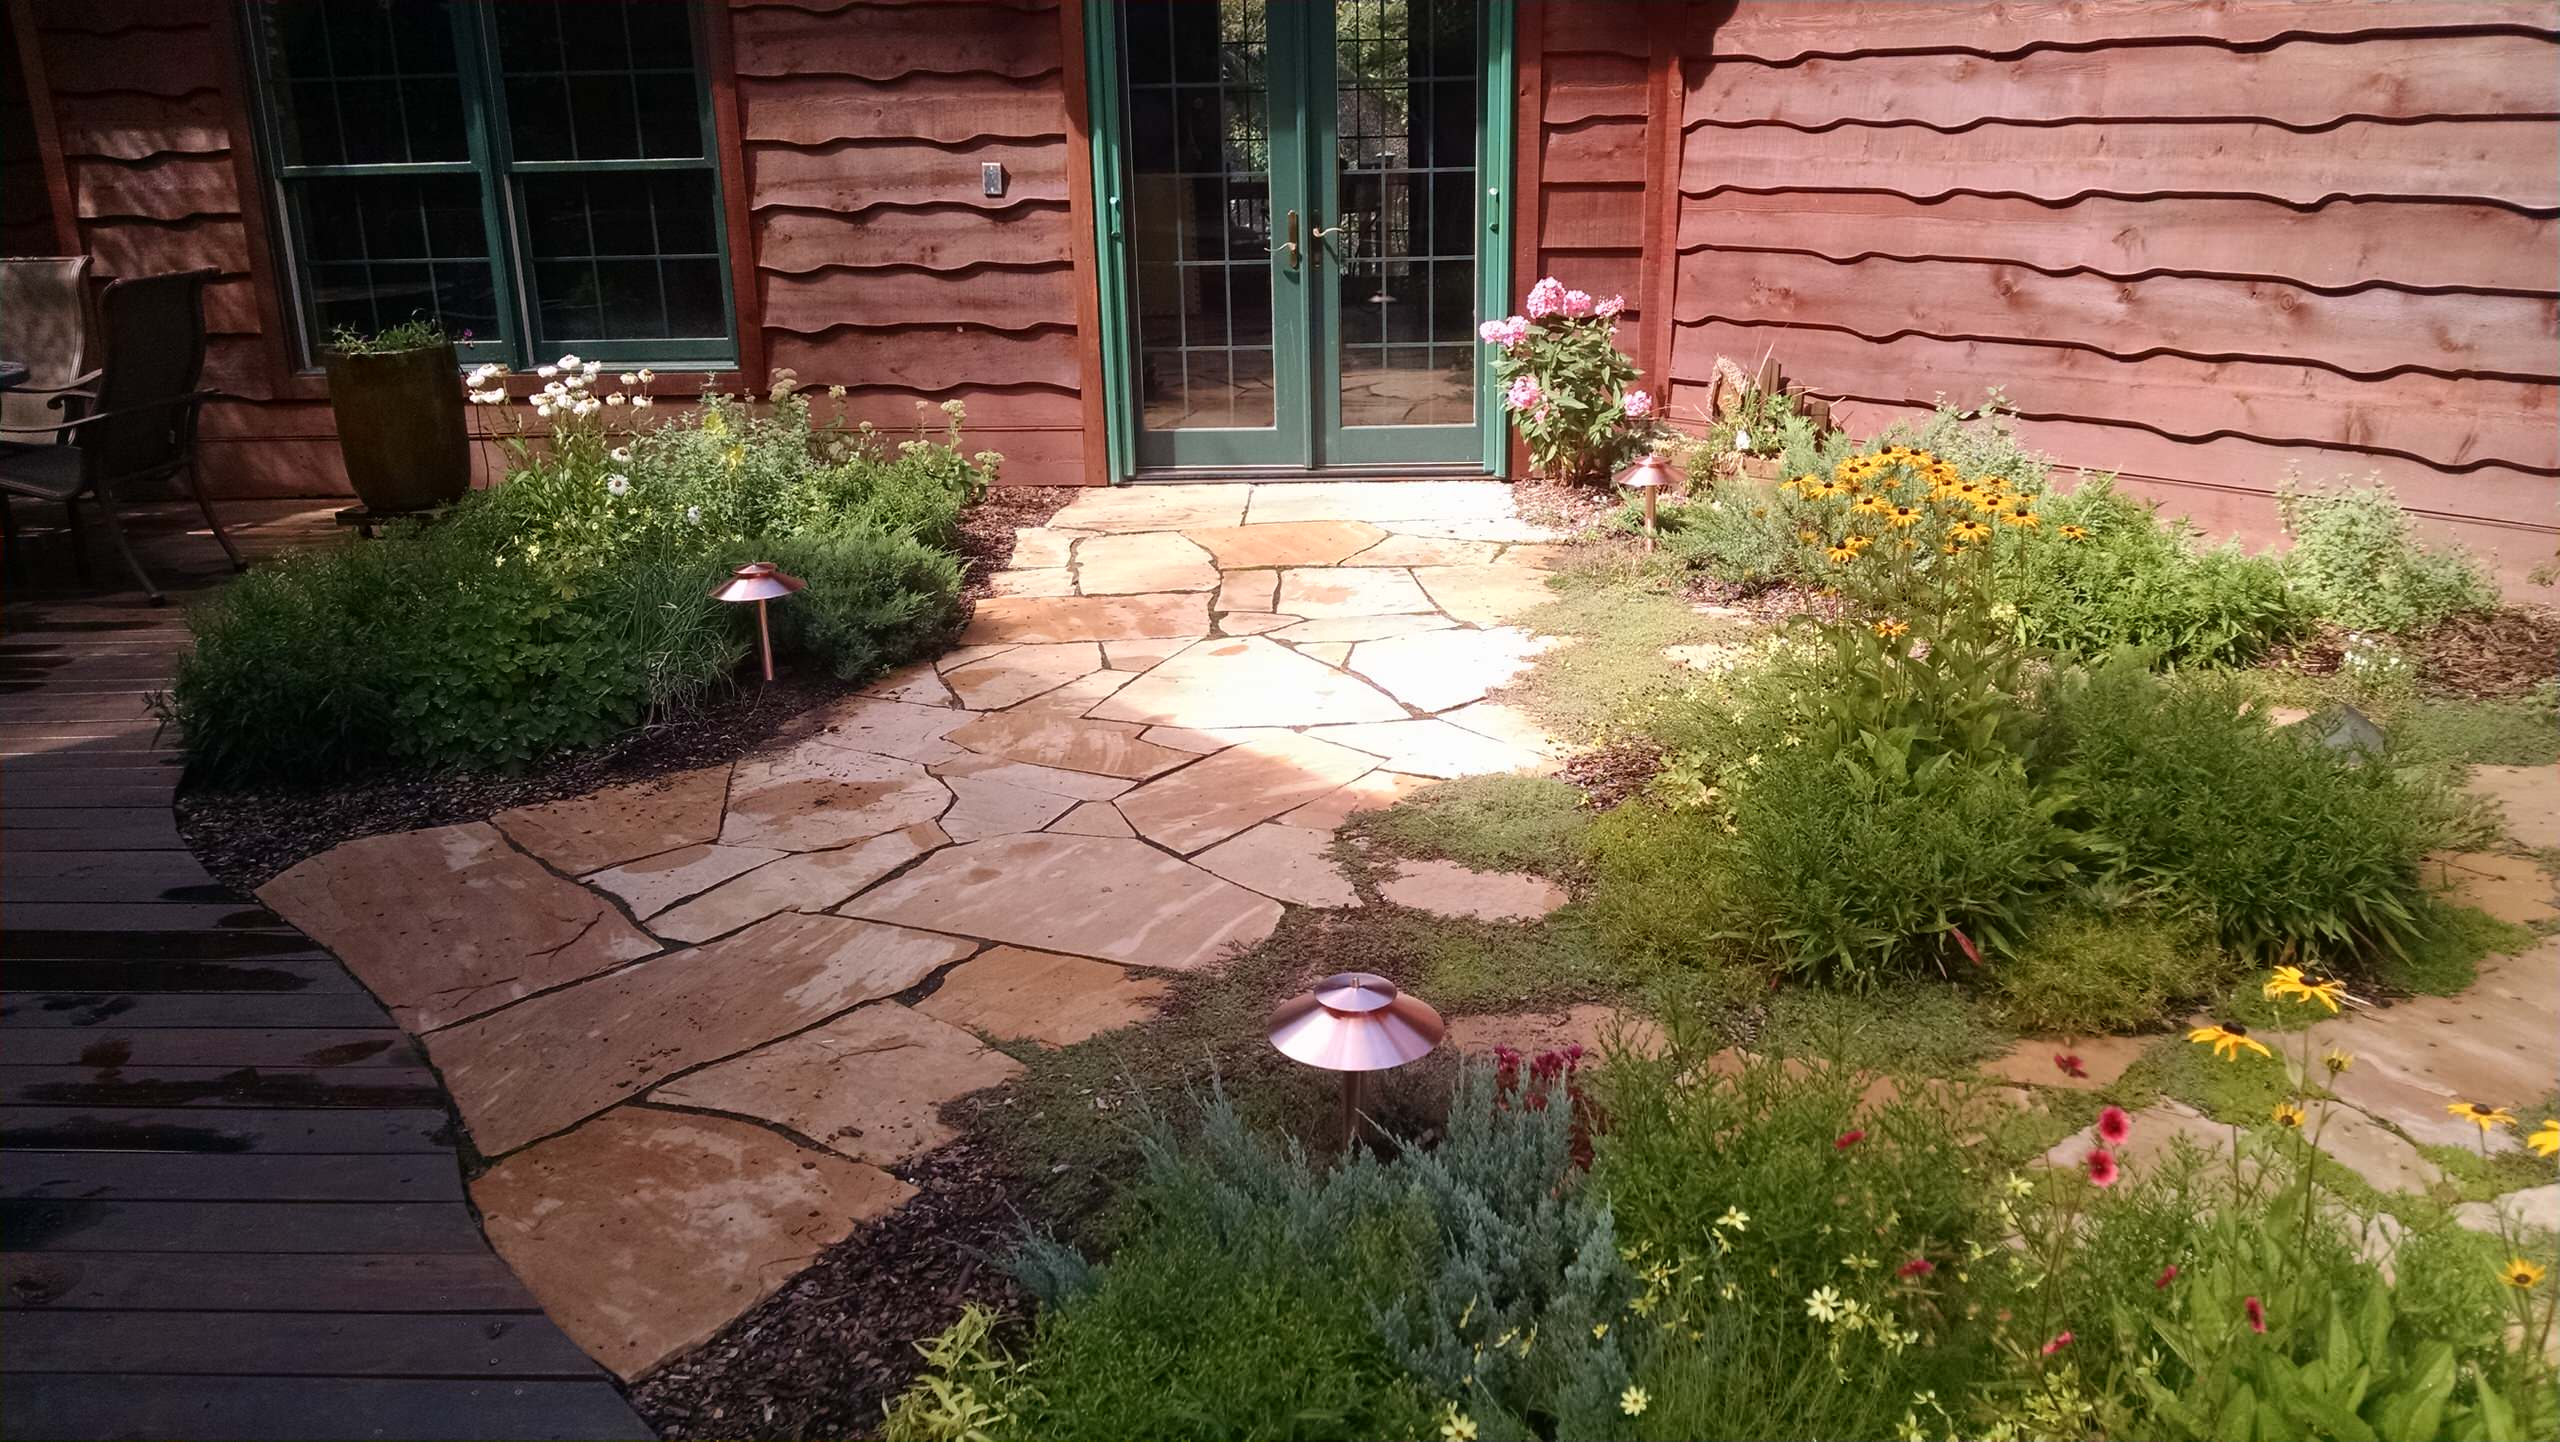 The flagstone and gareden on the live roof